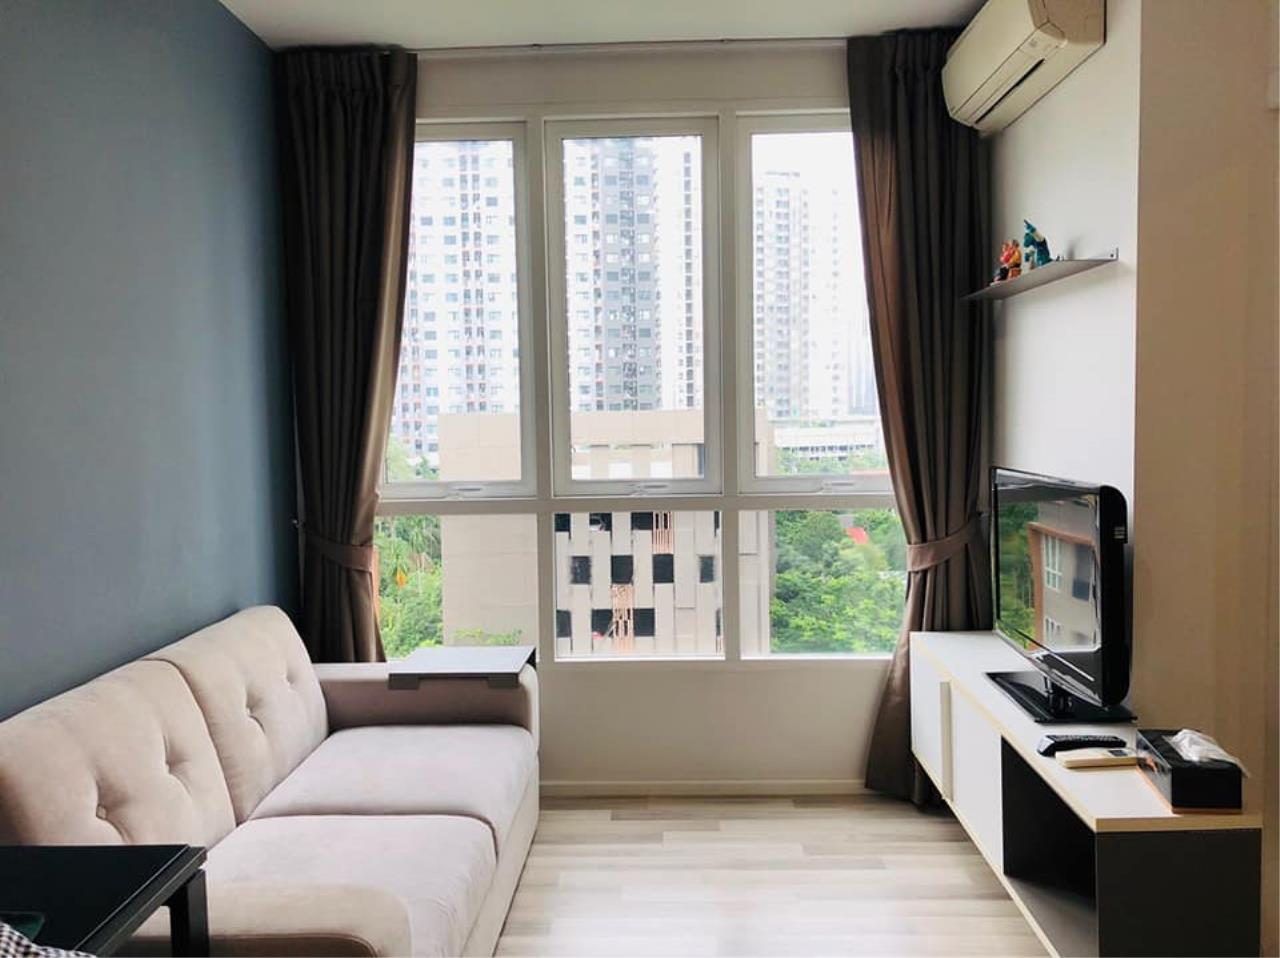 Agent - Prombood Agency's Sale - For Rent 1 Bedroom (Corner Unit) 31.95 sq.m. The Key Sathorn-Ratchapruek near Wutthakat BTS Station 6